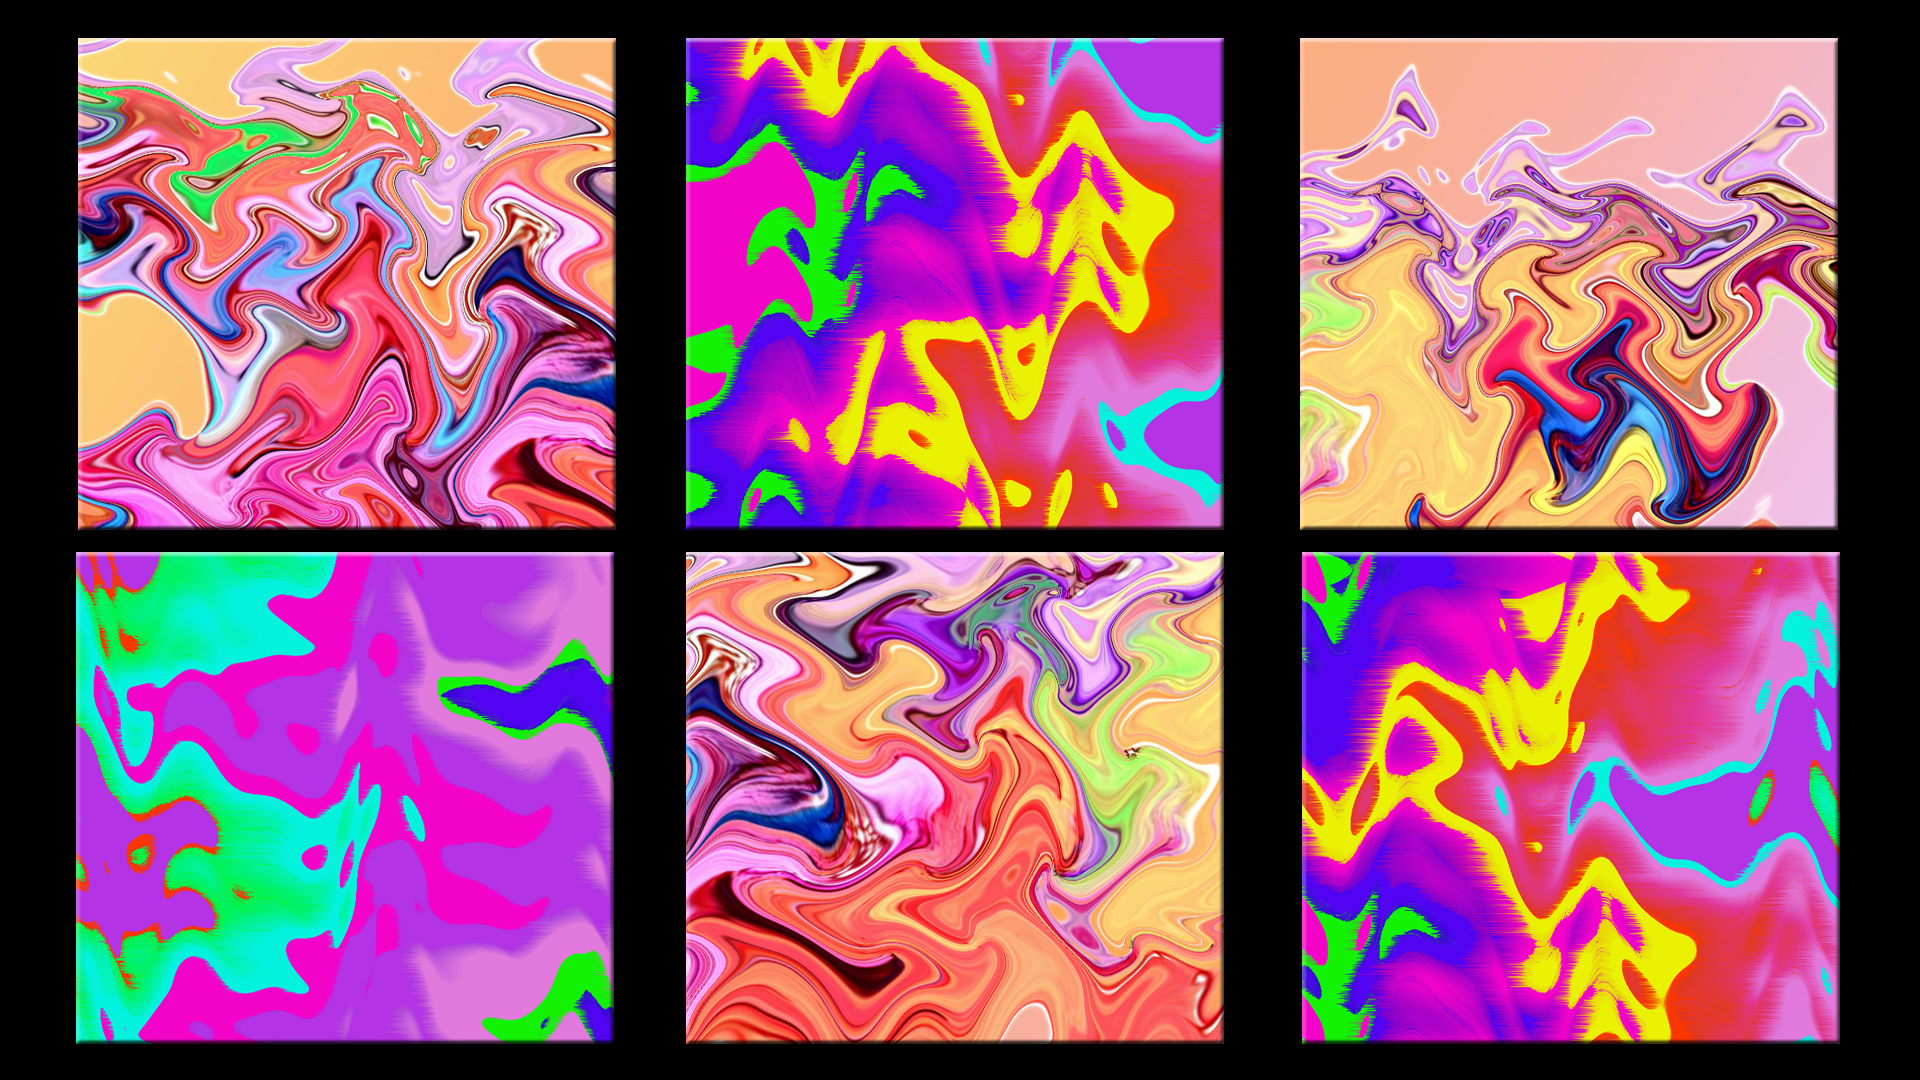 Artistic Colorful Digital Art Distortion Pop Art Ripple Wave 1920x1080